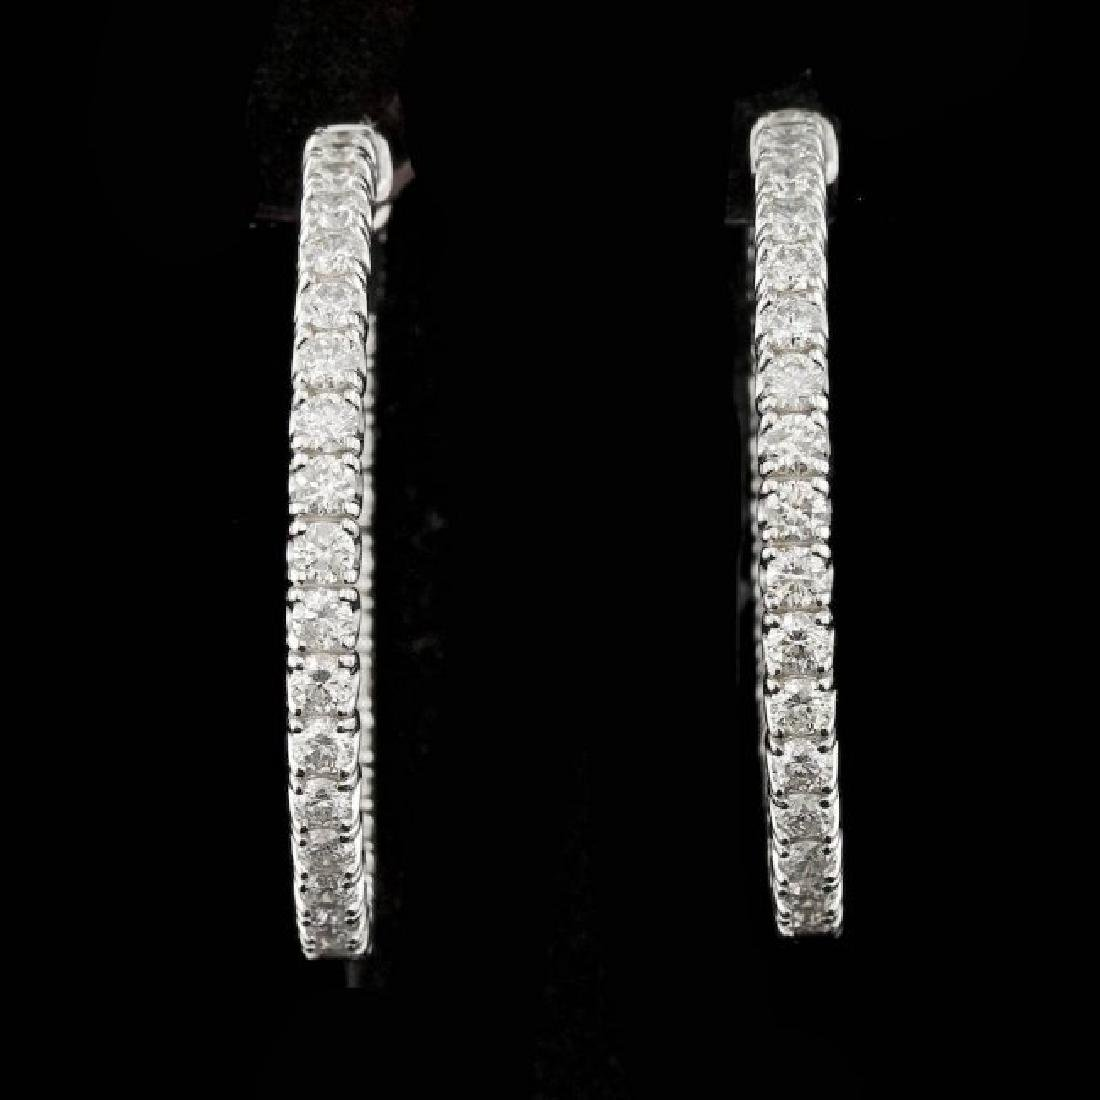 14k White Gold 4.50ct Diamond Earrings